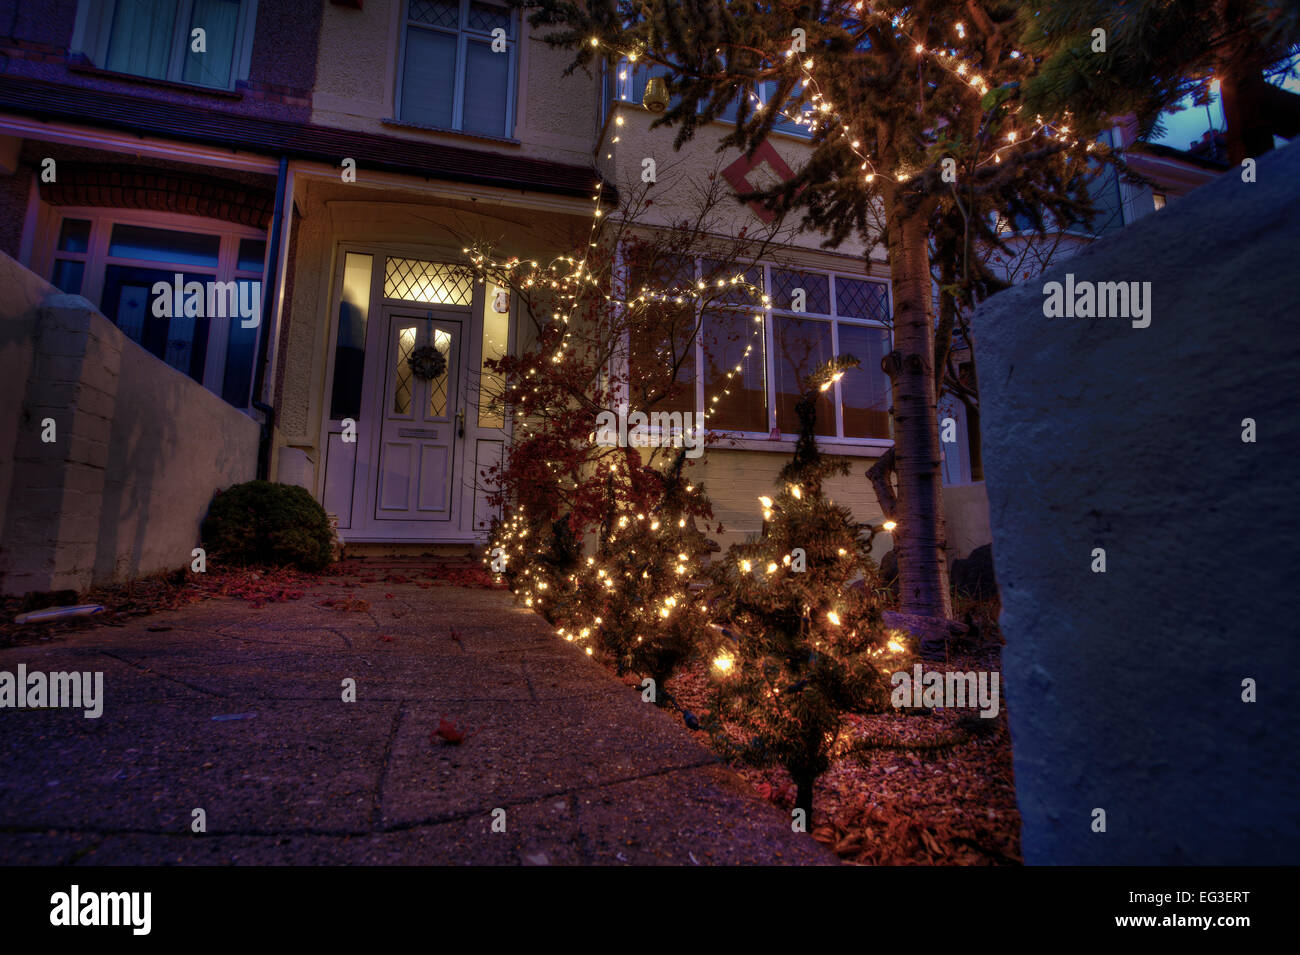 a garden decorated with small Christmas trees and lights Stock Photo